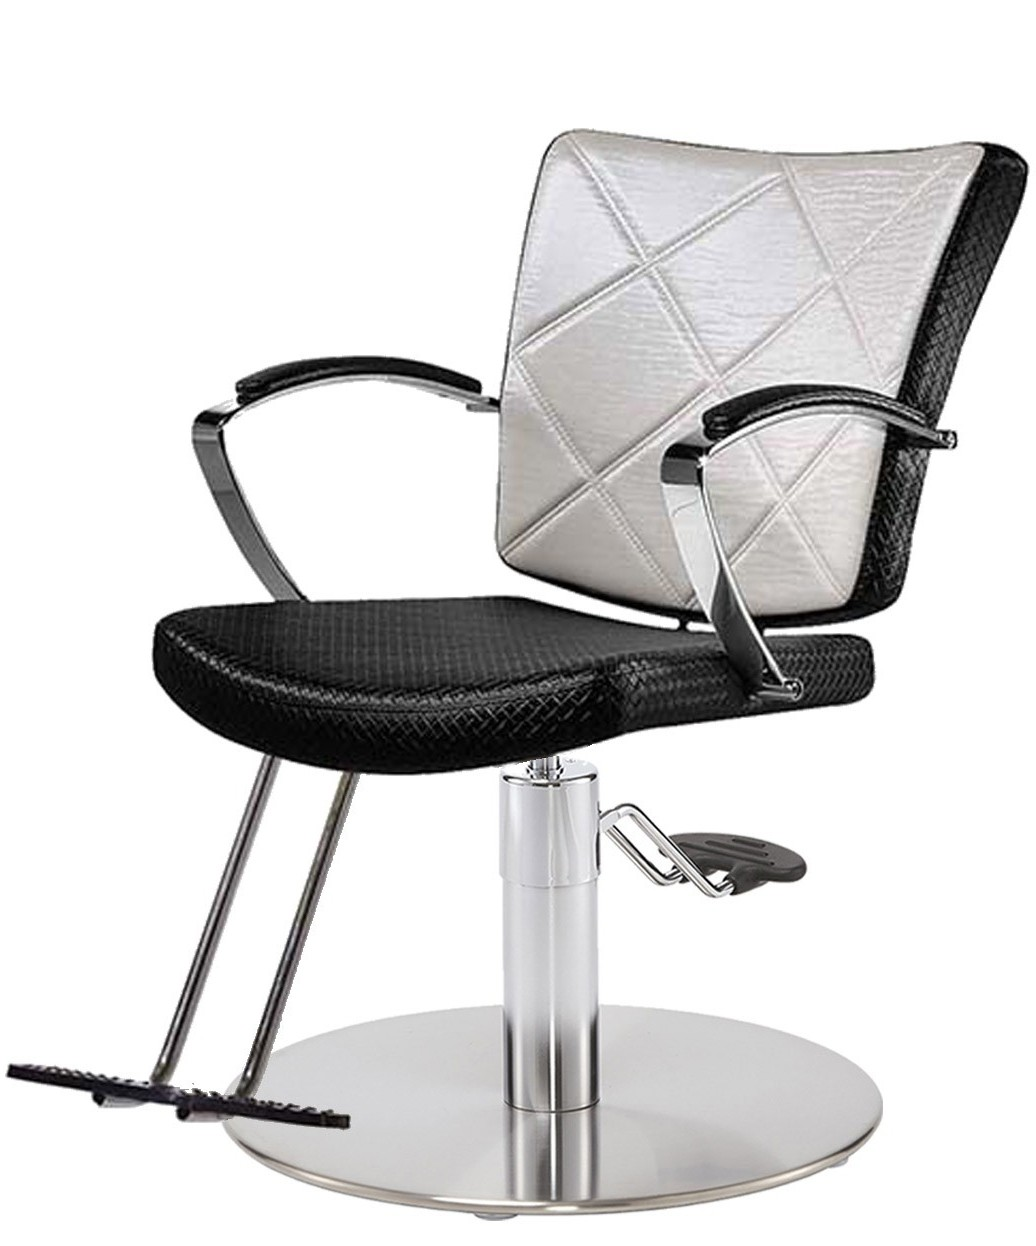 SH-165 Julie Styling Chair